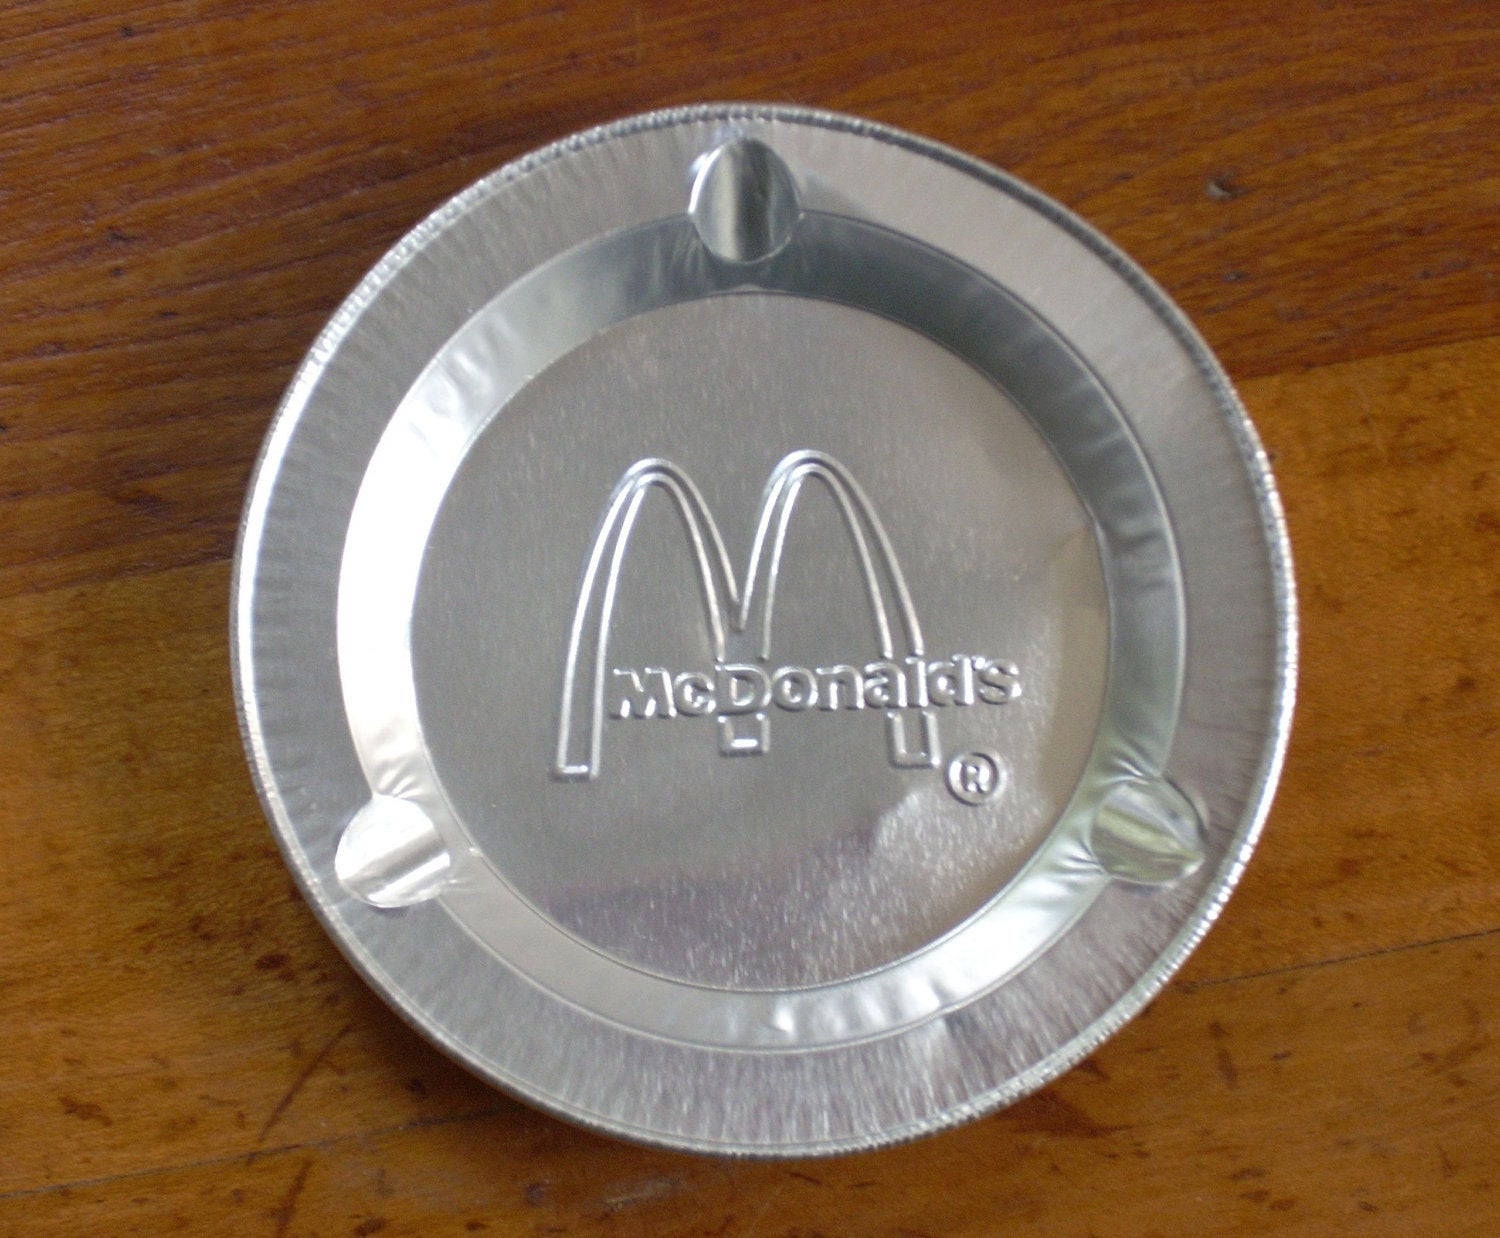 The good old days, when you could eat a Big Mac and smoke at McDonalds